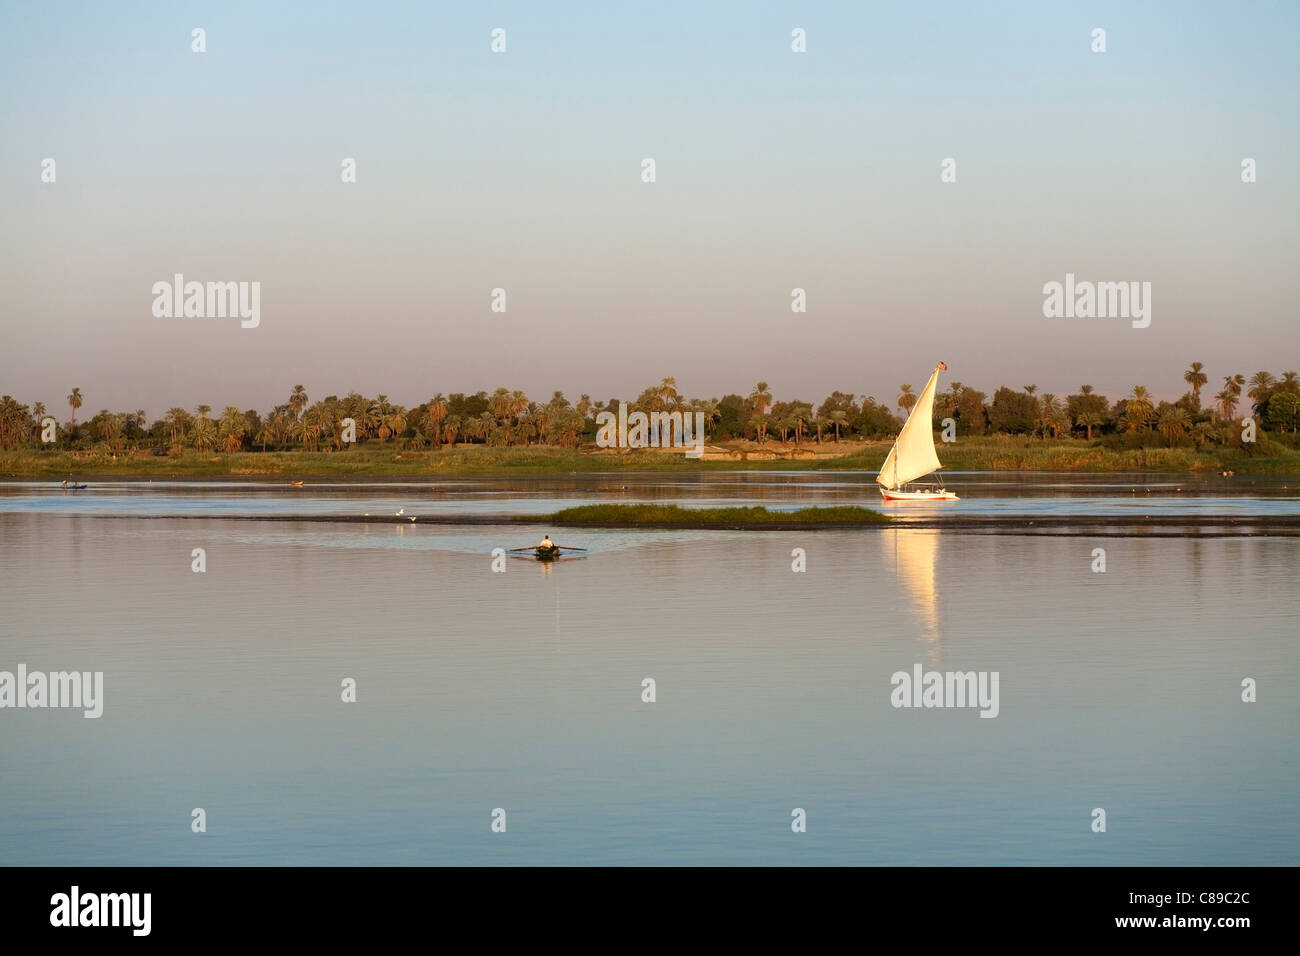 Nile felluca sailing right to left reflected on calm water with palm lined Nile bank behind with small fishing boat - Stock Image